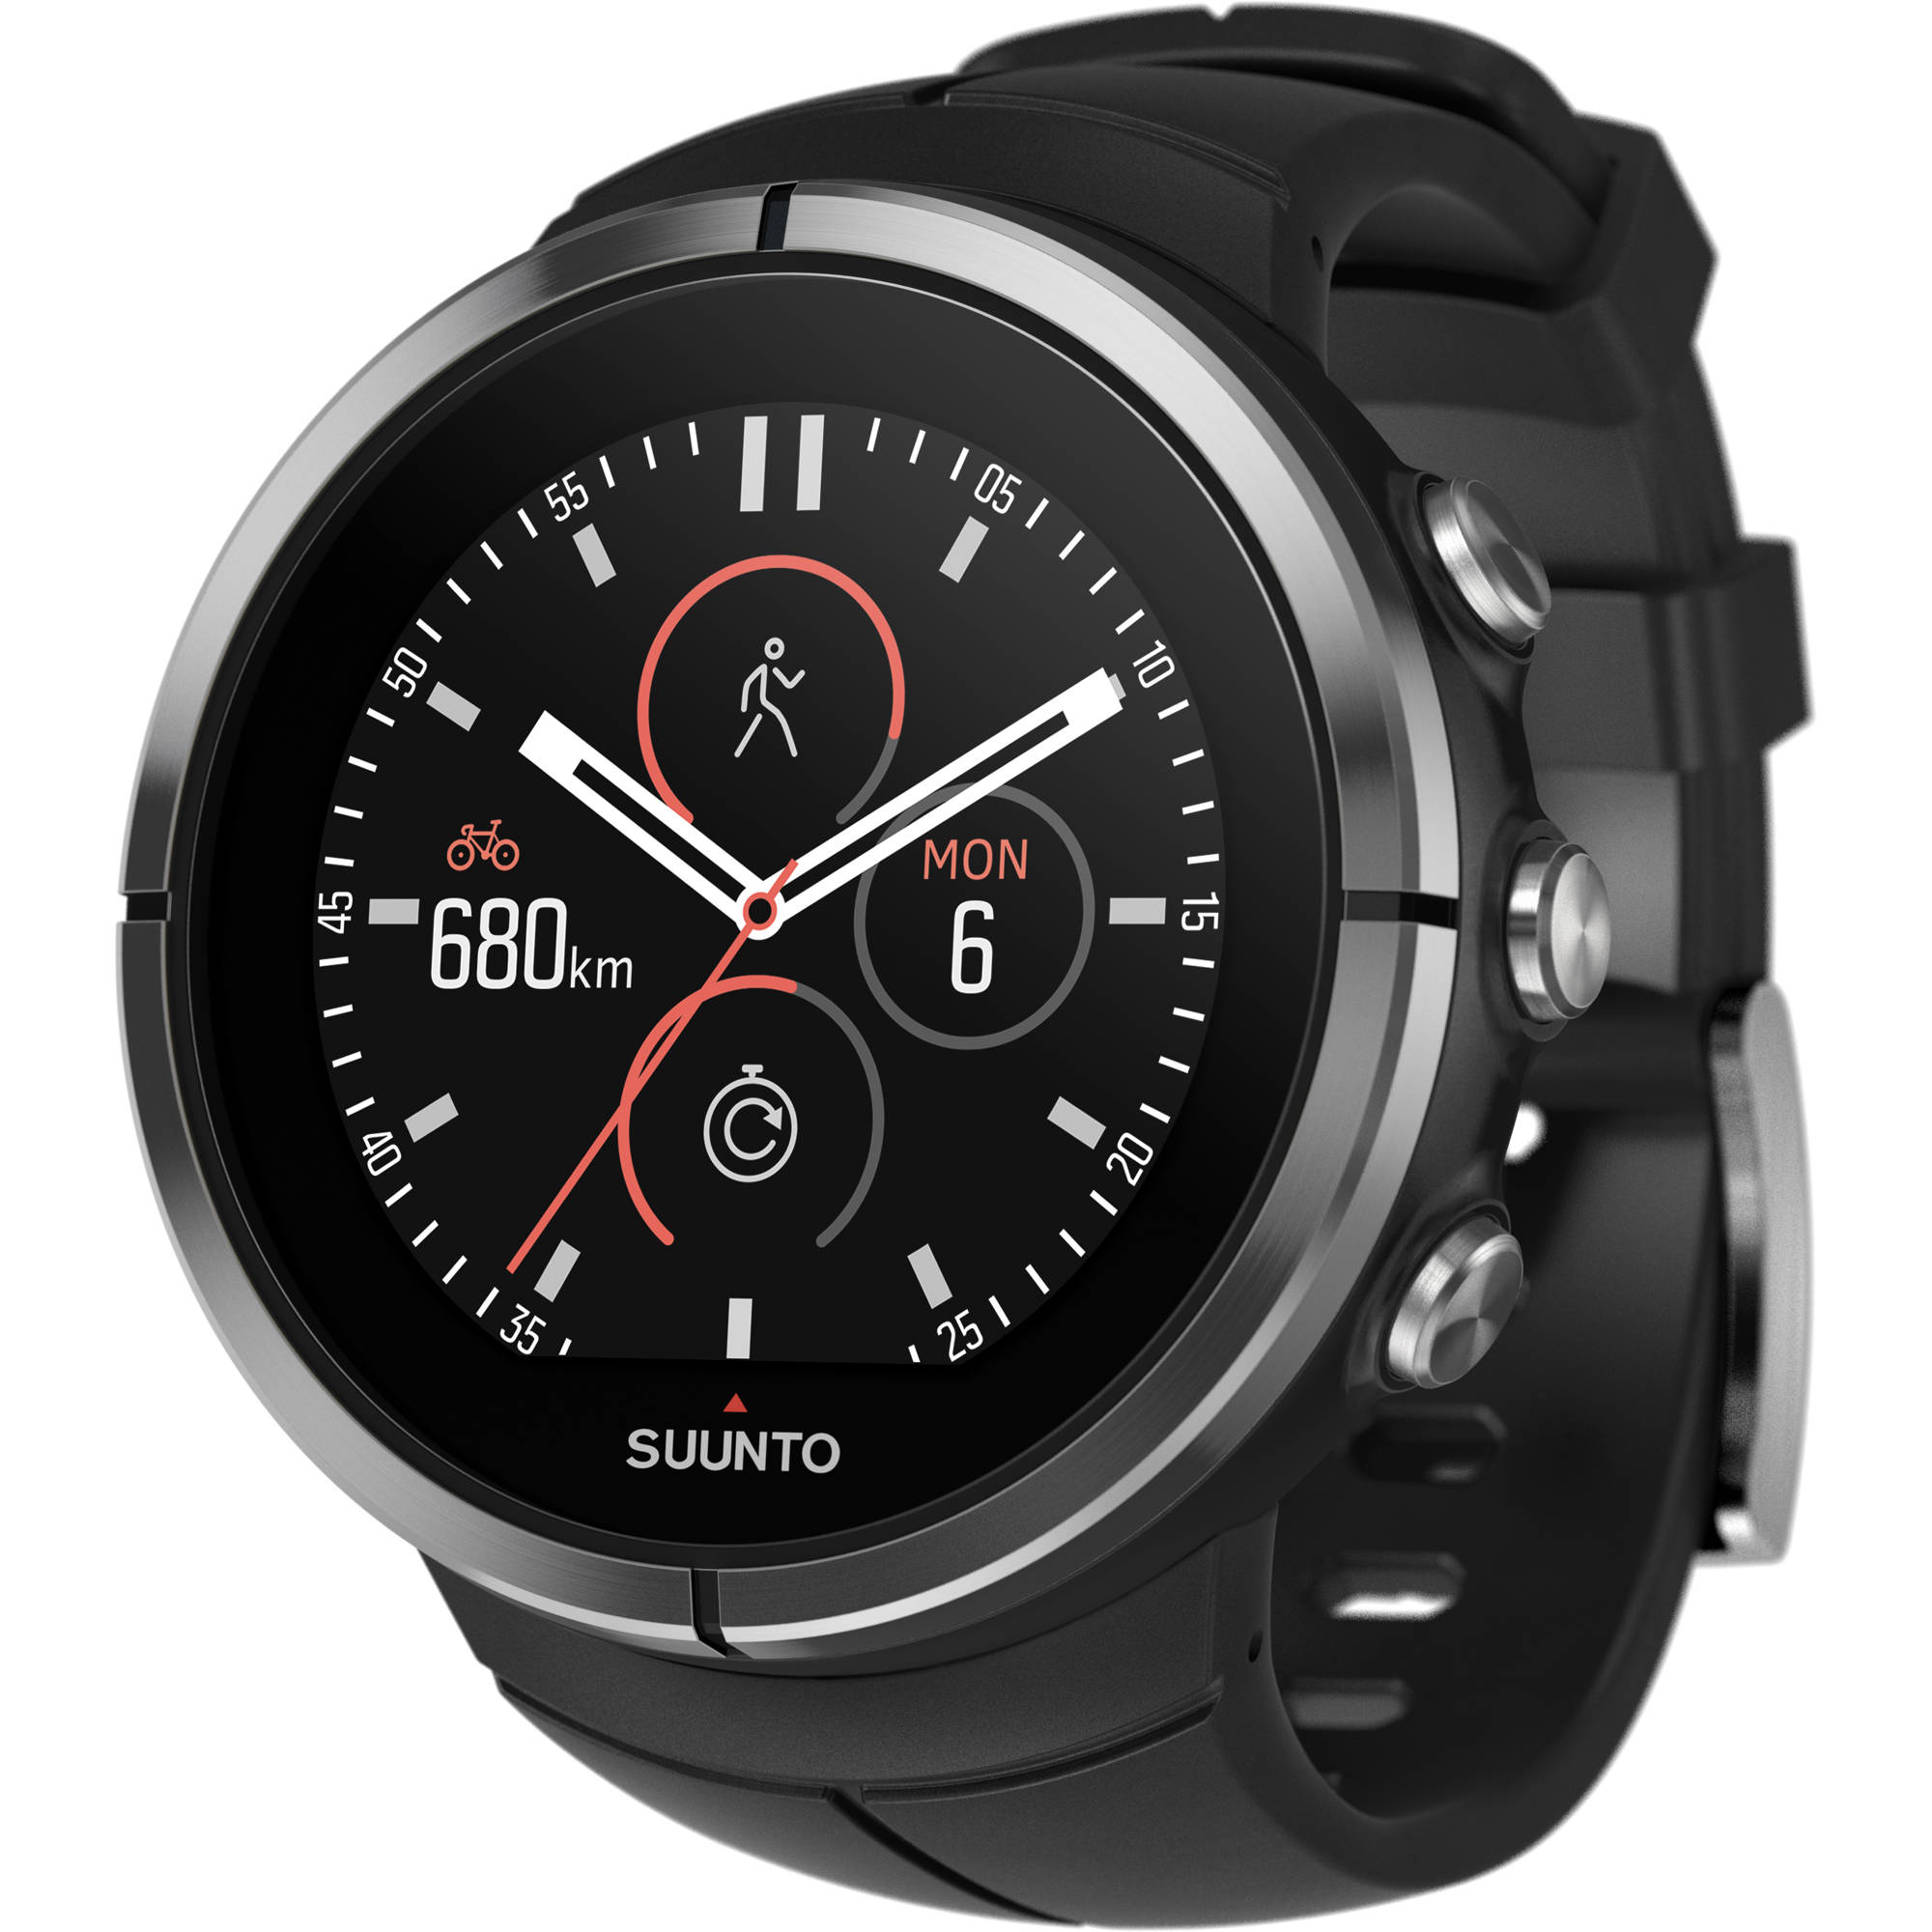 Spartan Ultra Sports Watches